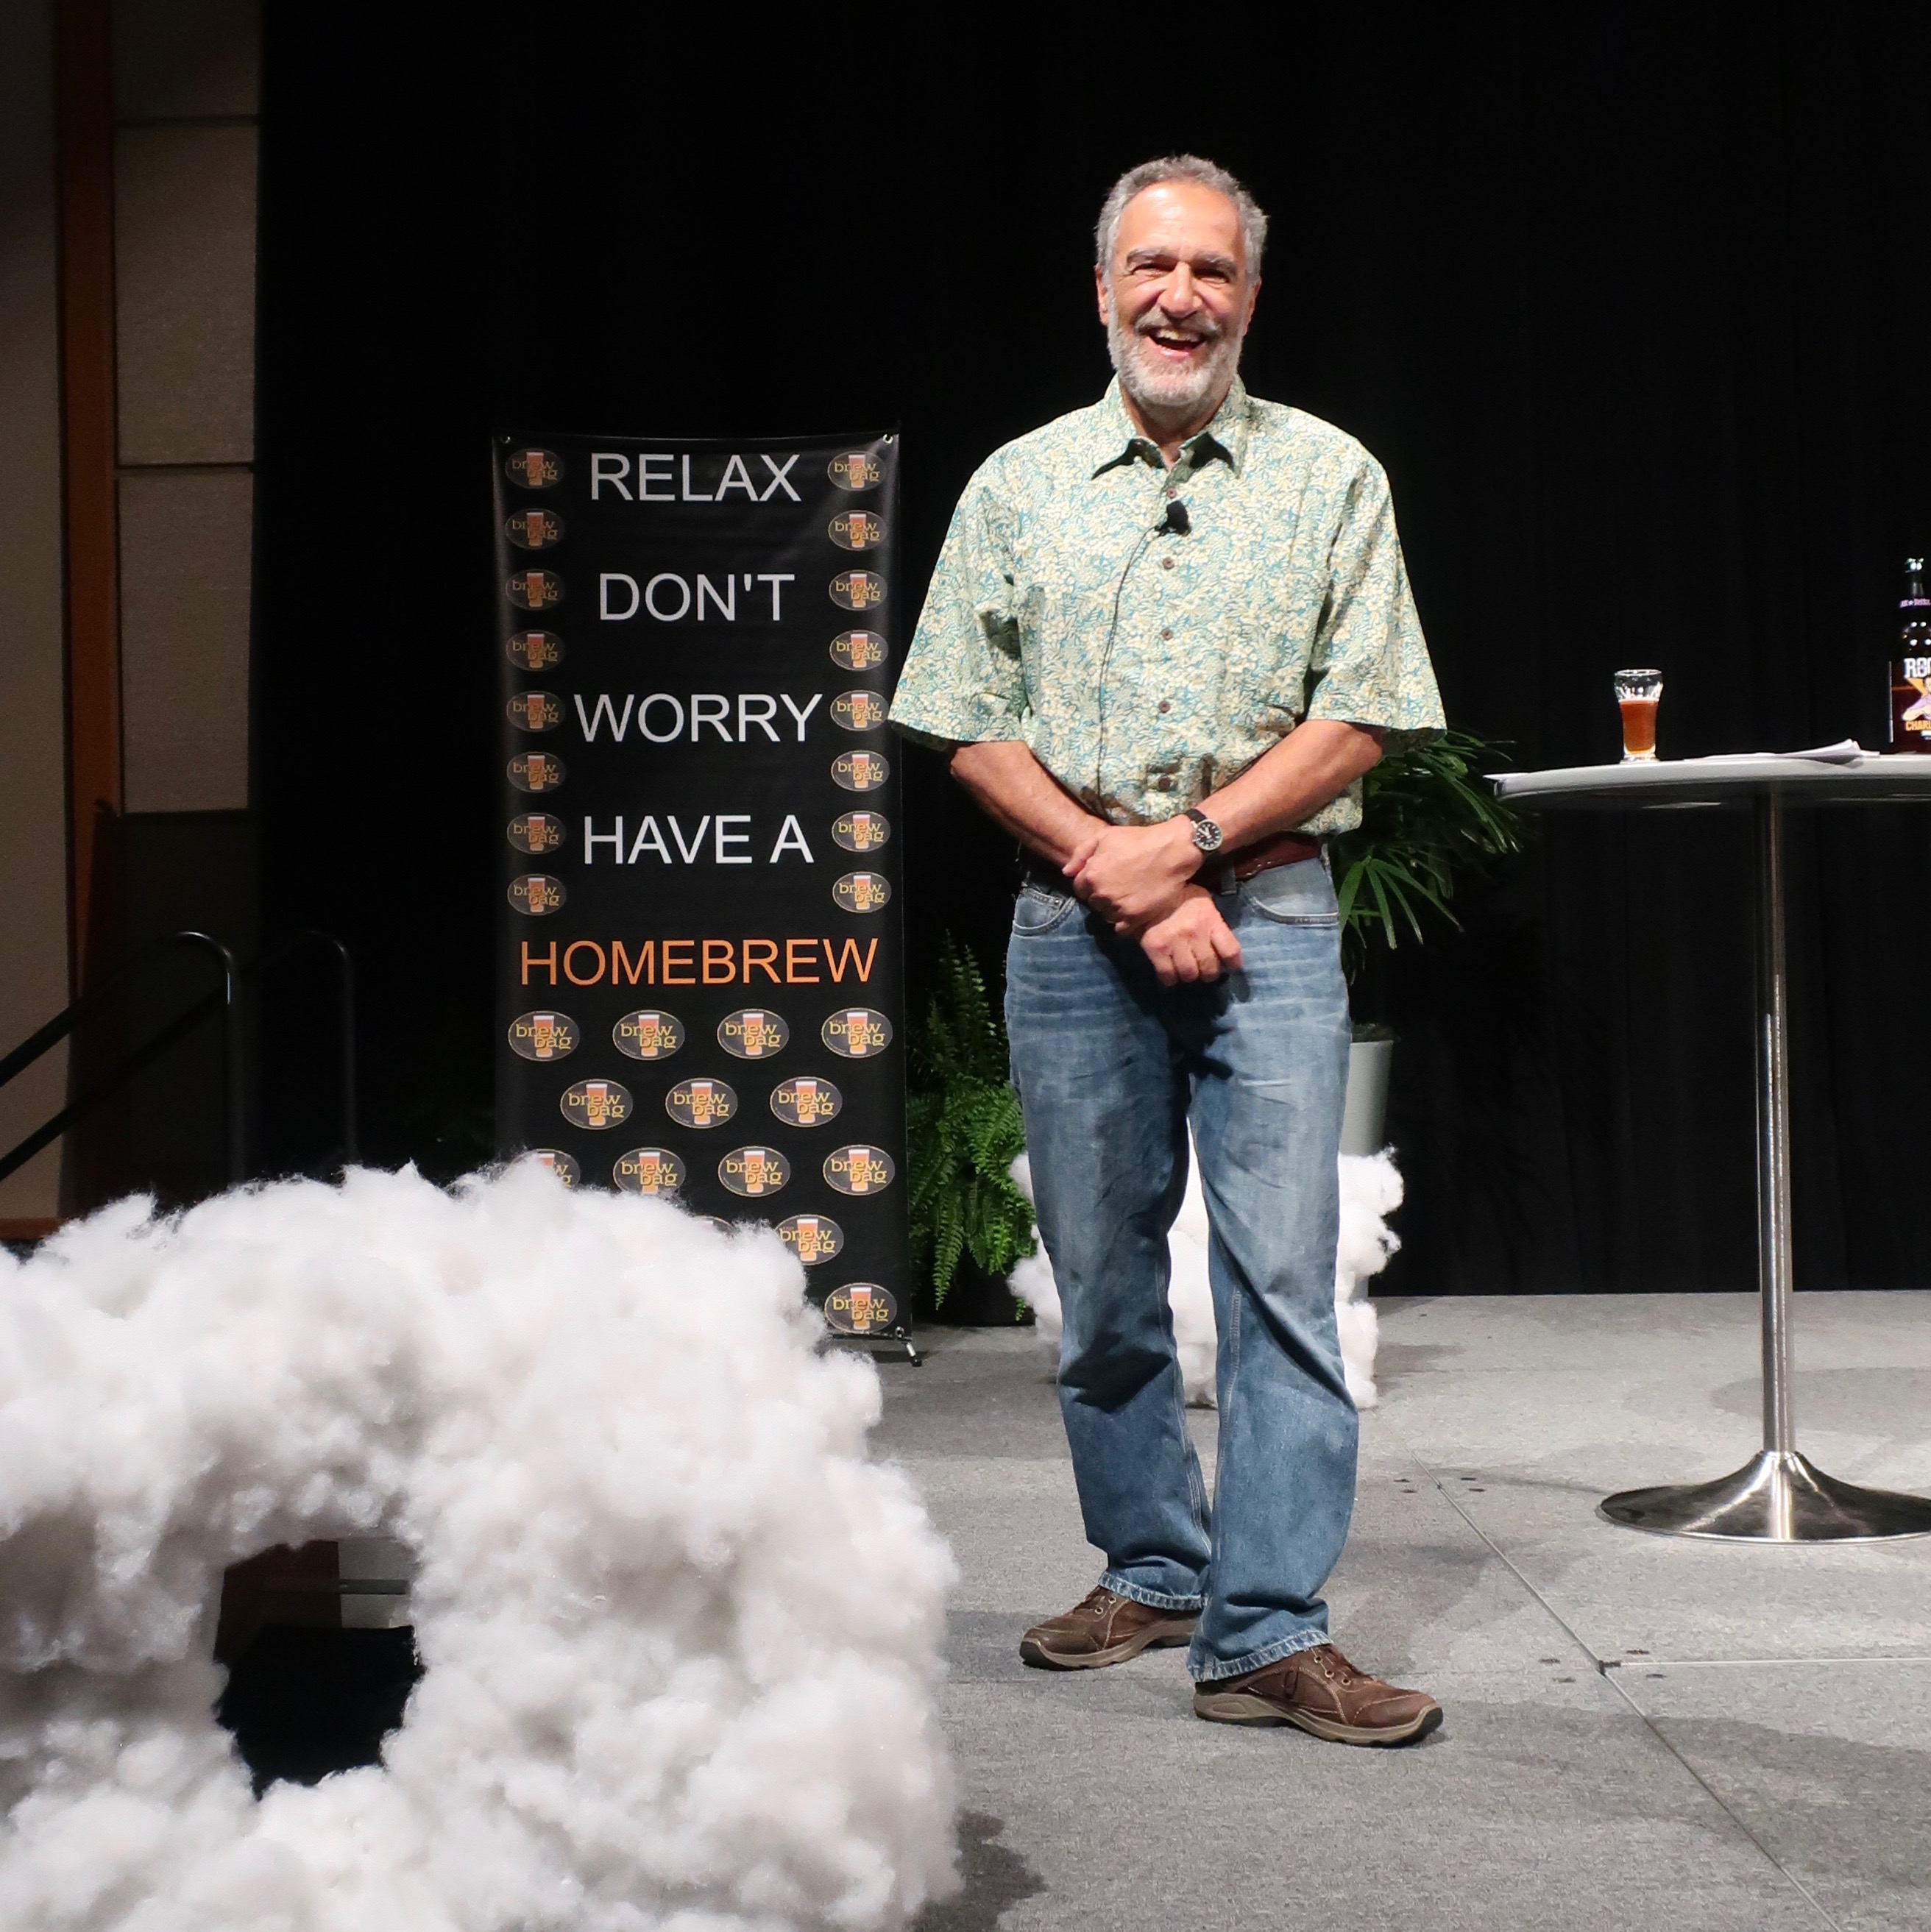 Charlie Papazian during the Keynote Address at Homebrew Con 2018.